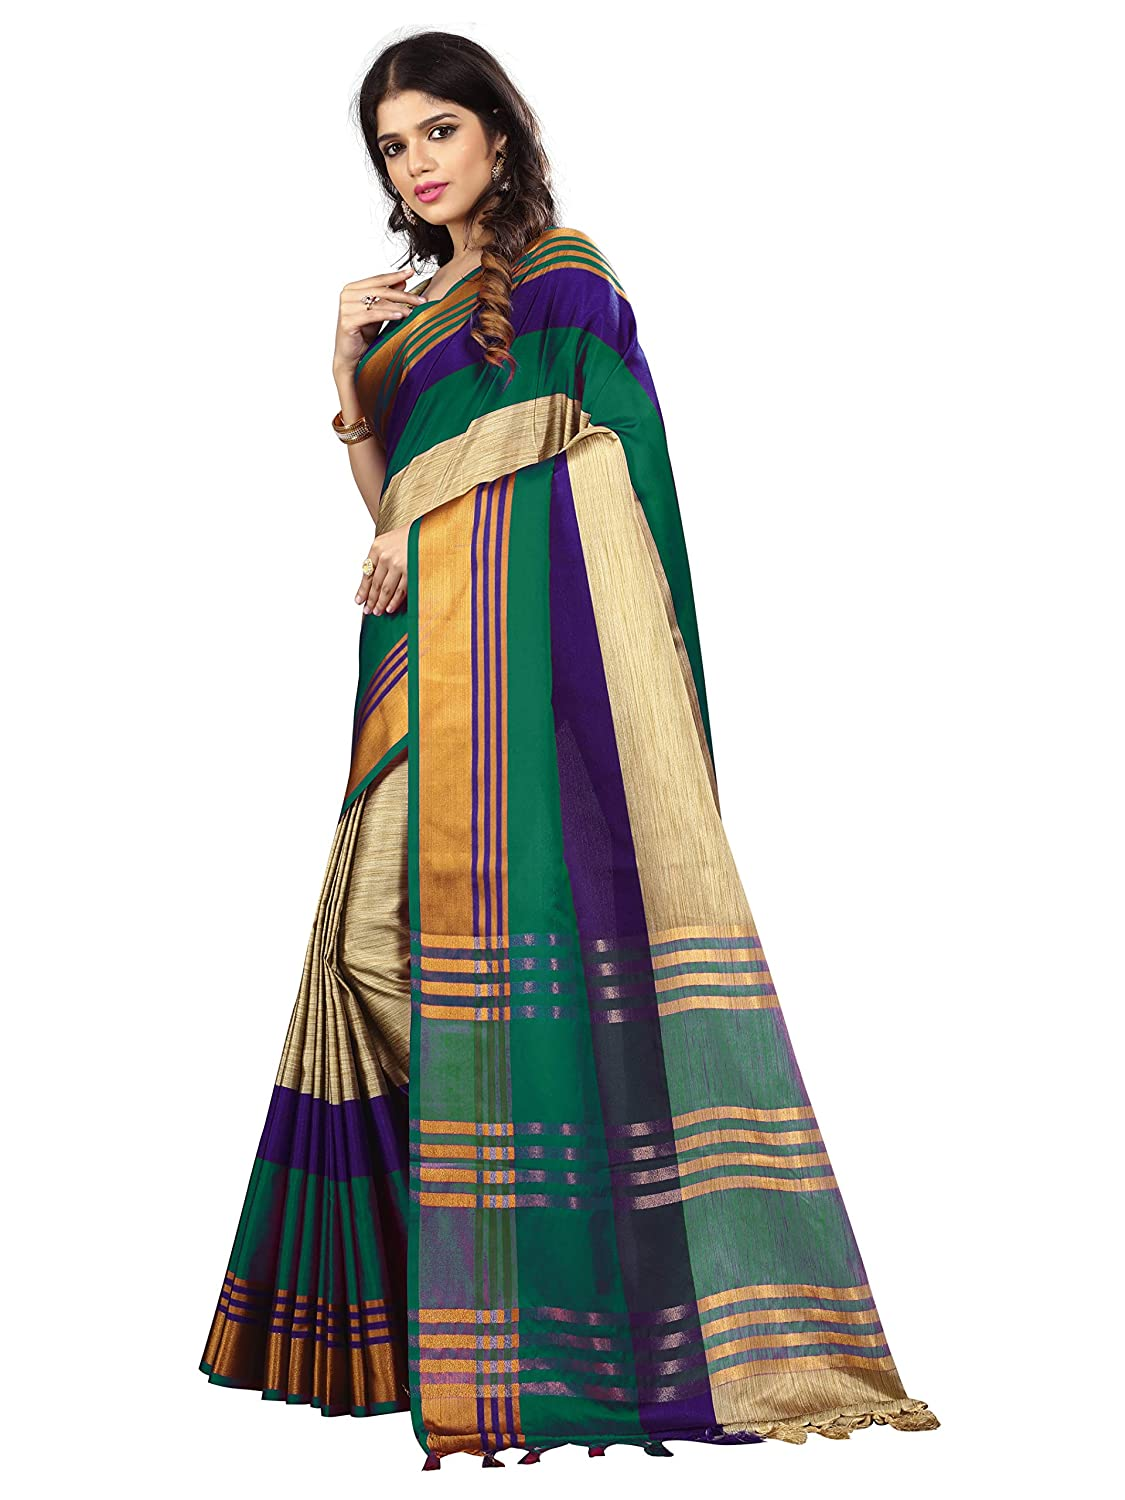 411bdaf3db9 Vastrang Sarees Women s Poly Cotton Silk Sarees With Blouse Piece    Tassels 5461CR(Green Purple)  Amazon.in  Clothing   Accessories